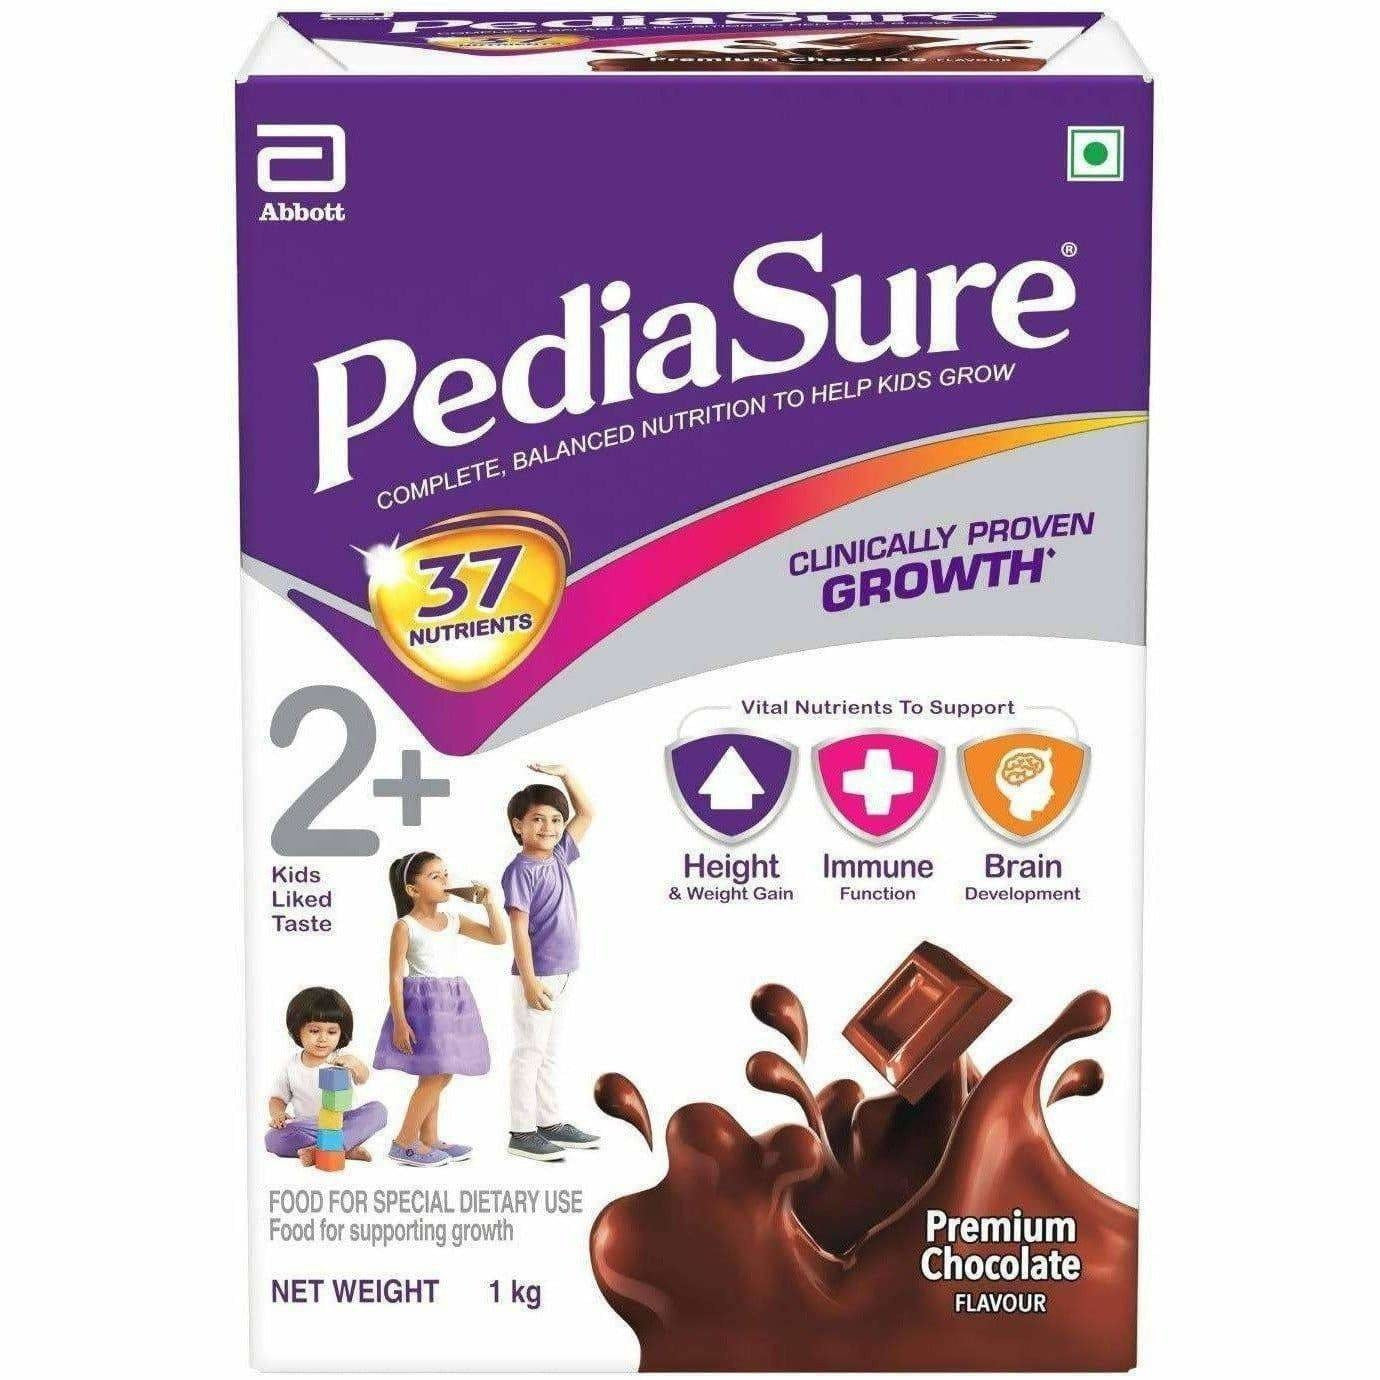 Pediasure Health and Nutrition Drink Powder for Kids Growth Chocolate Flavour